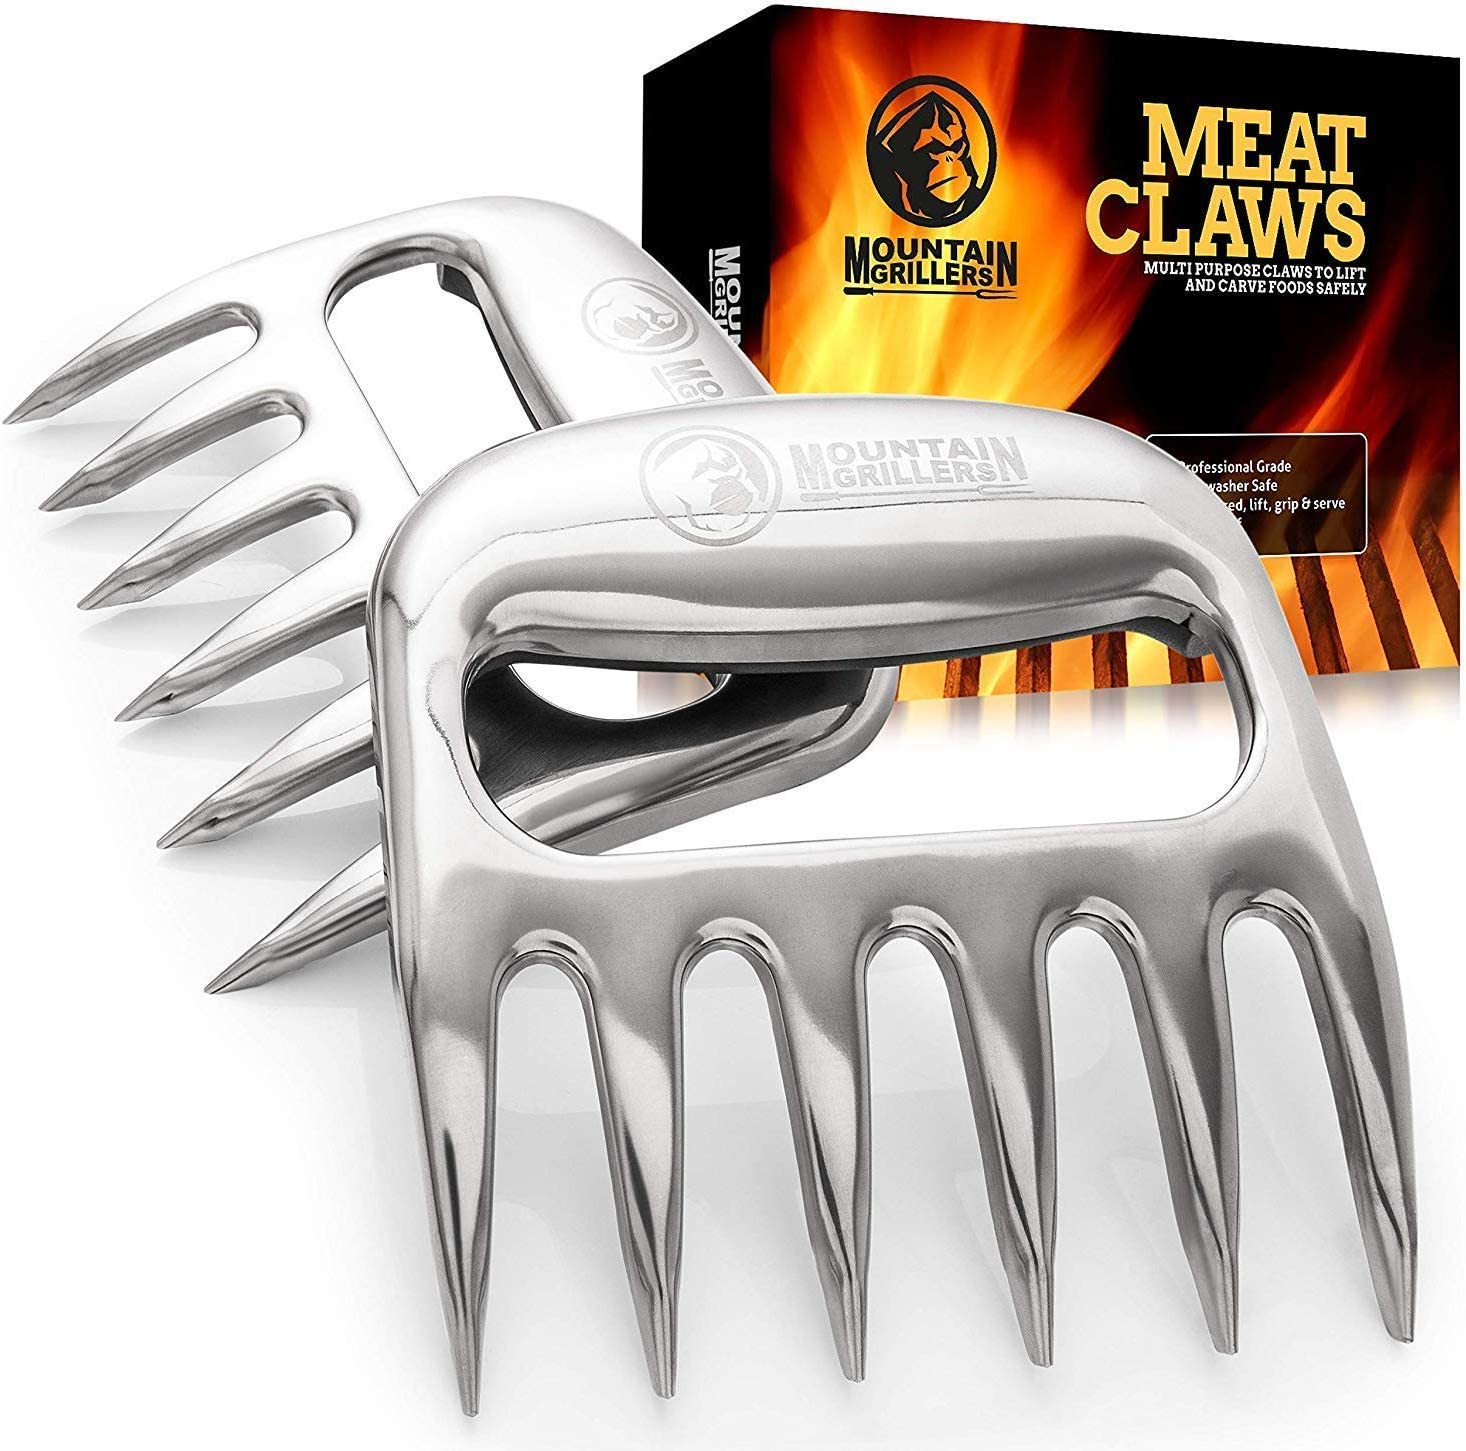 Beef M BBQ Grill Fixget 2 Pieces Stainless Steel Pulled Claws Bear Paws Shredder Claws with Wooden Handle Meat Forks Bear Paw Meat Claws with Wooden Handle for Pork Silver Chicken